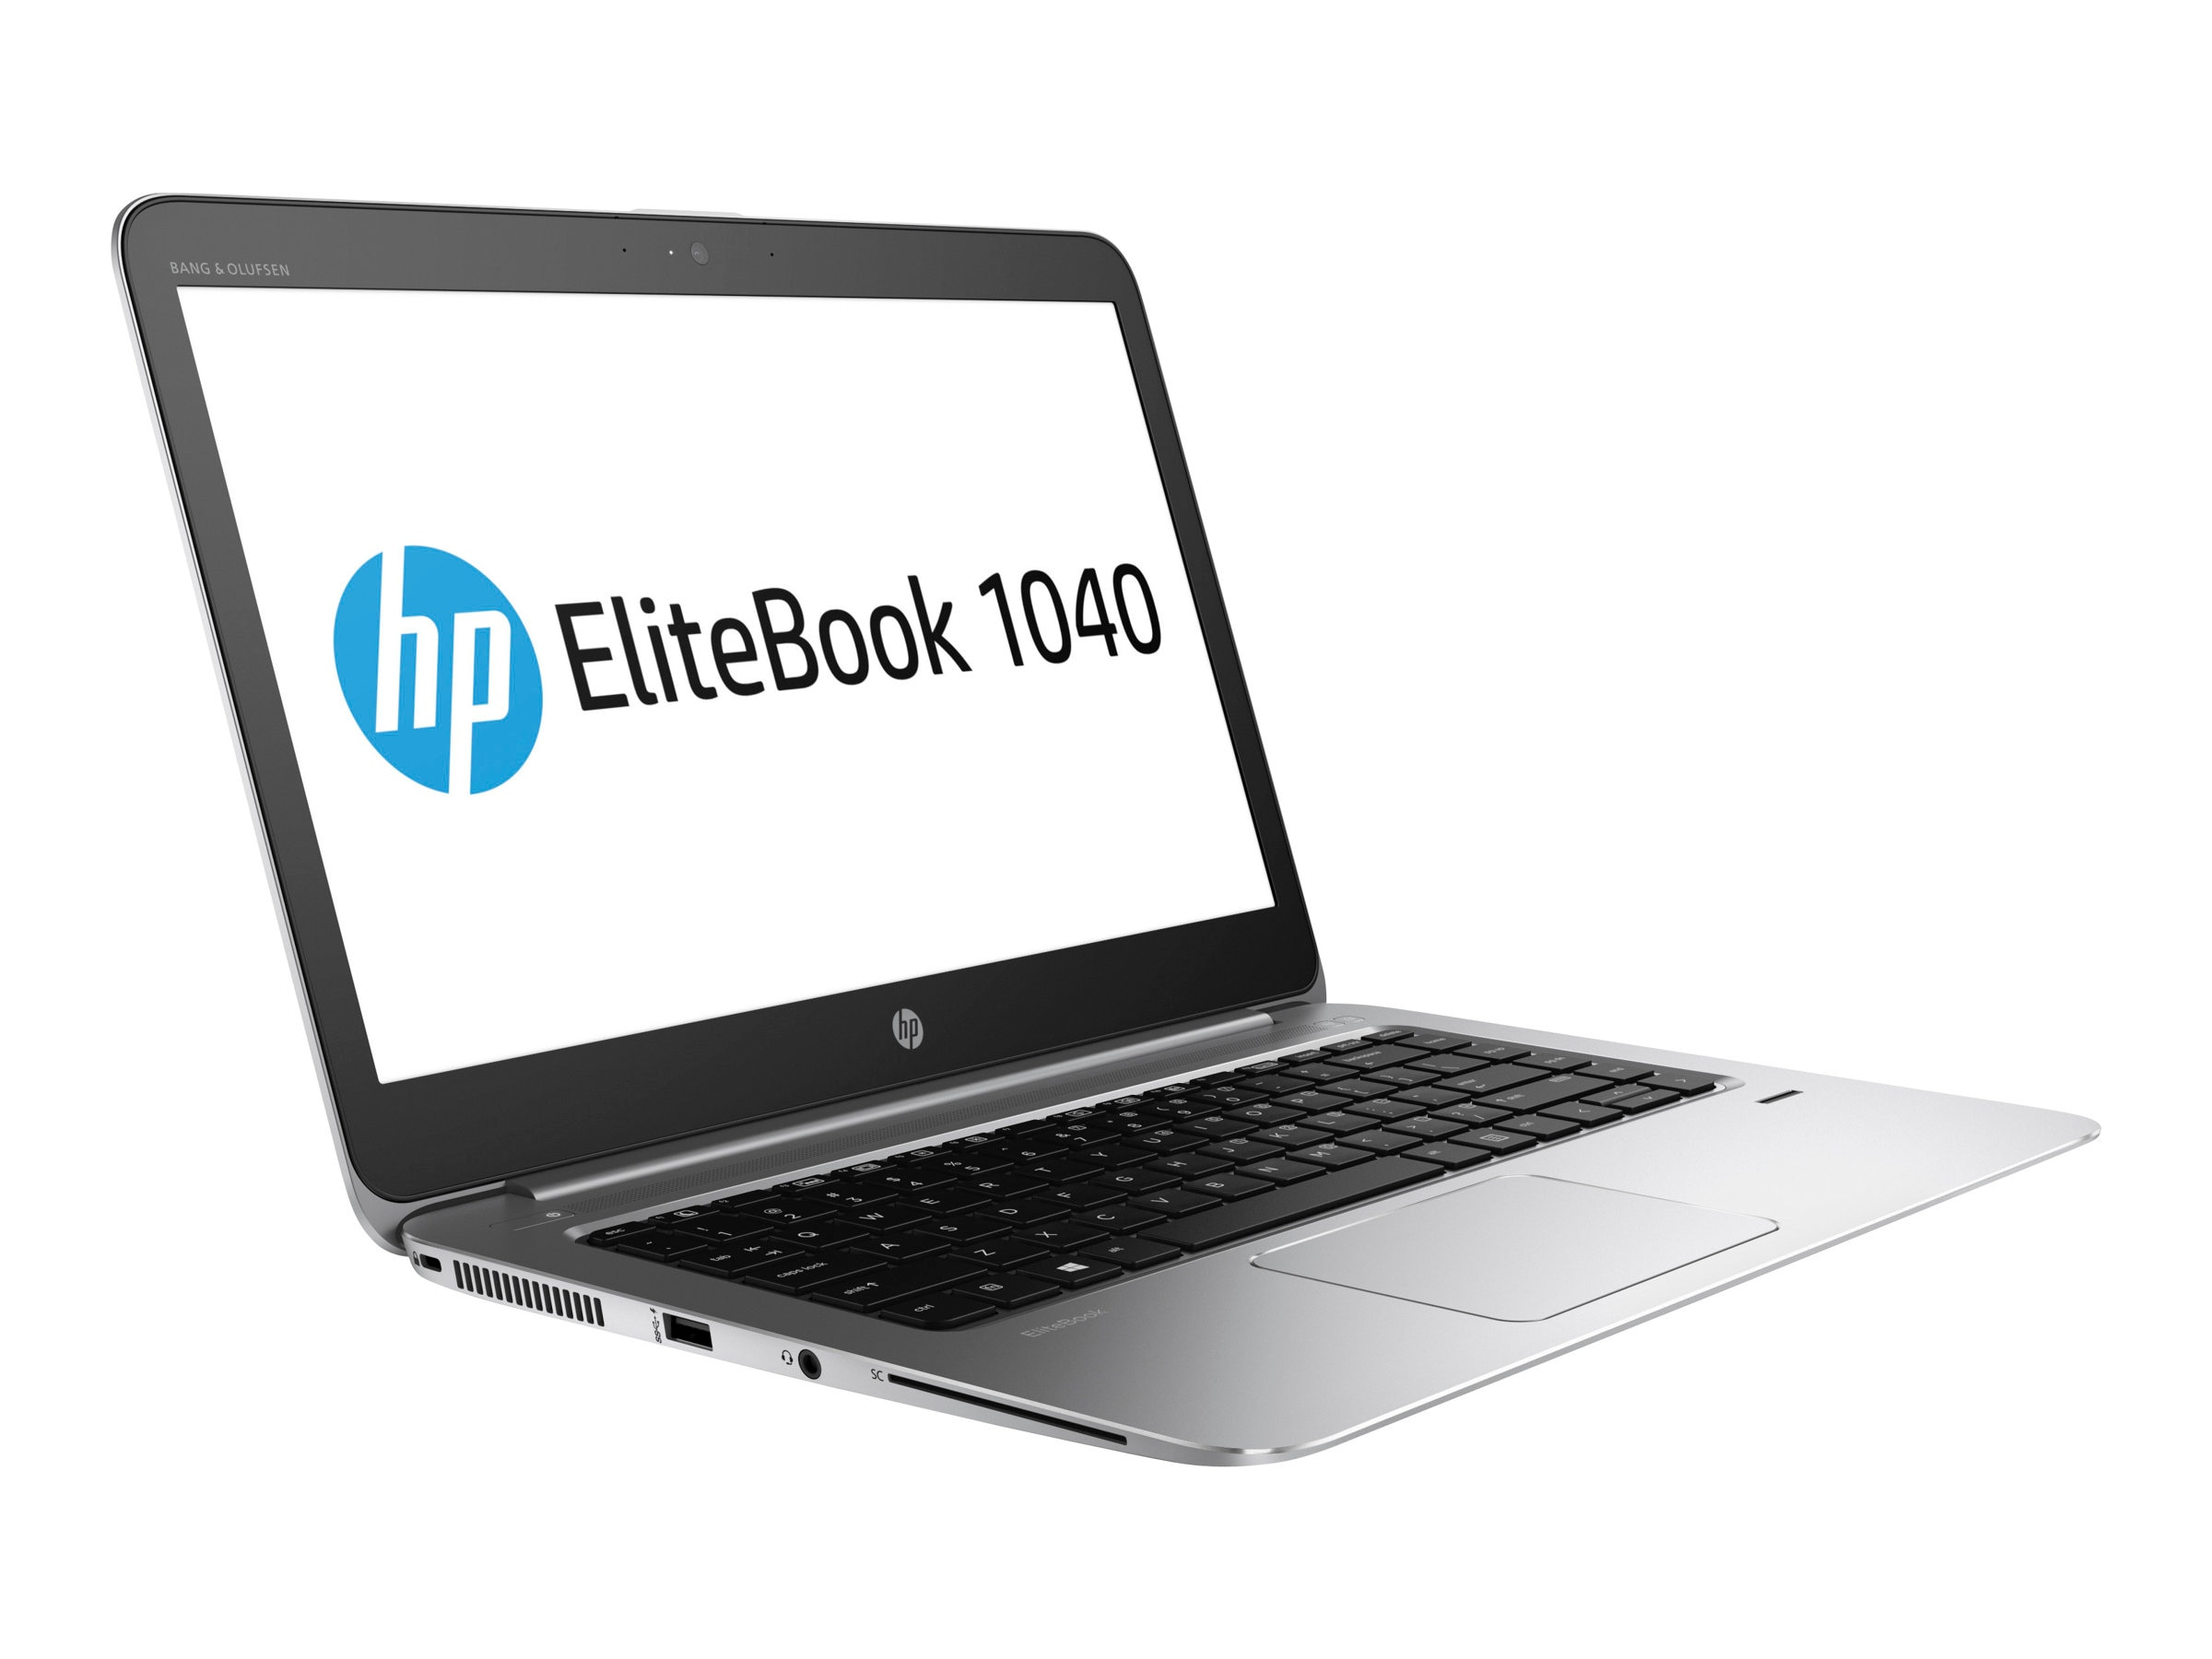 HP EliteBook 1040 G3 2.6GHz Core i7 14in display